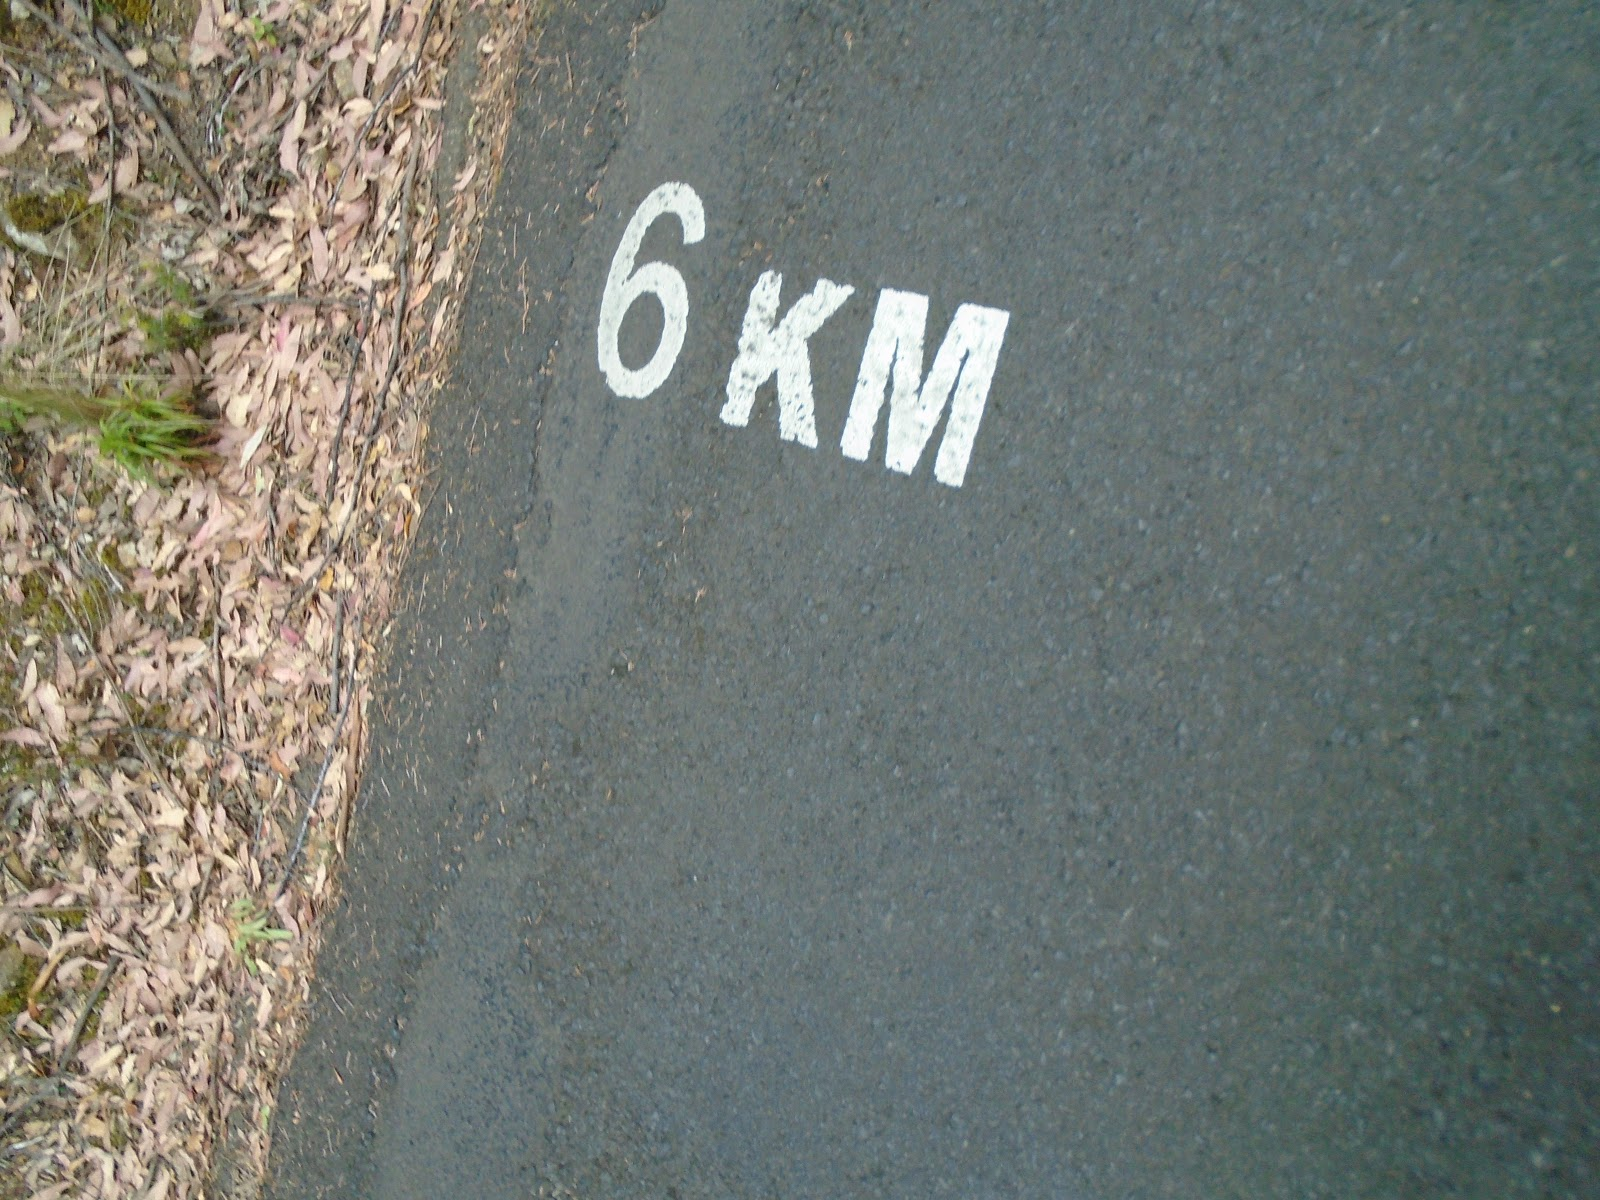 Bicycle ride of Mt. Wellington - km marker painted on road